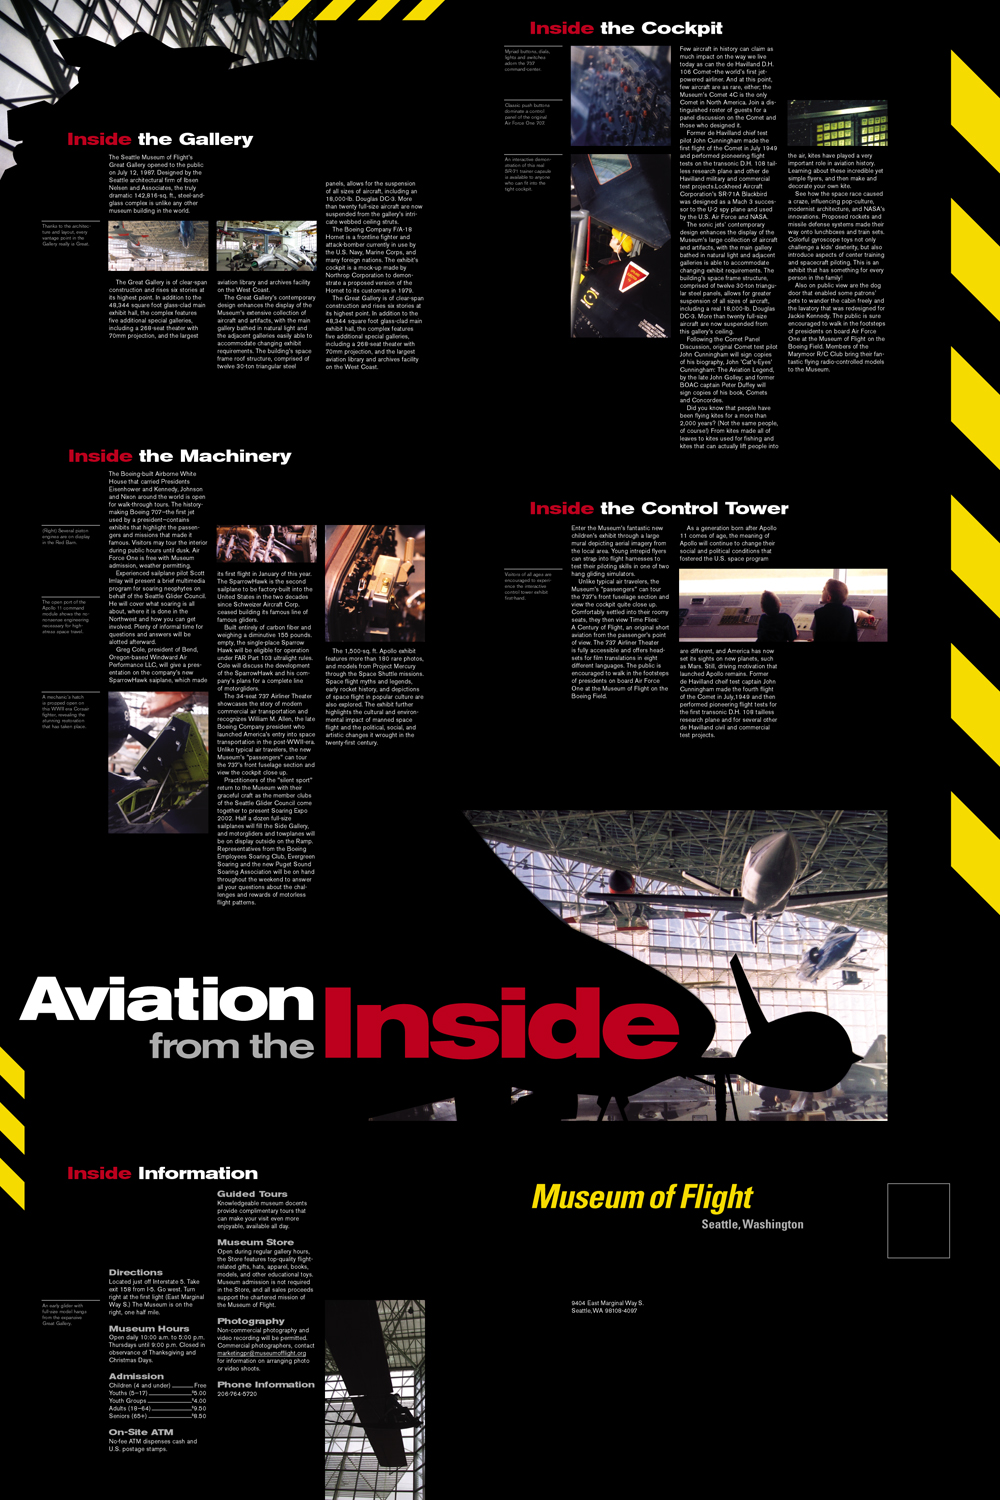 Seattle Museum of Flight poster/mailer inside/front